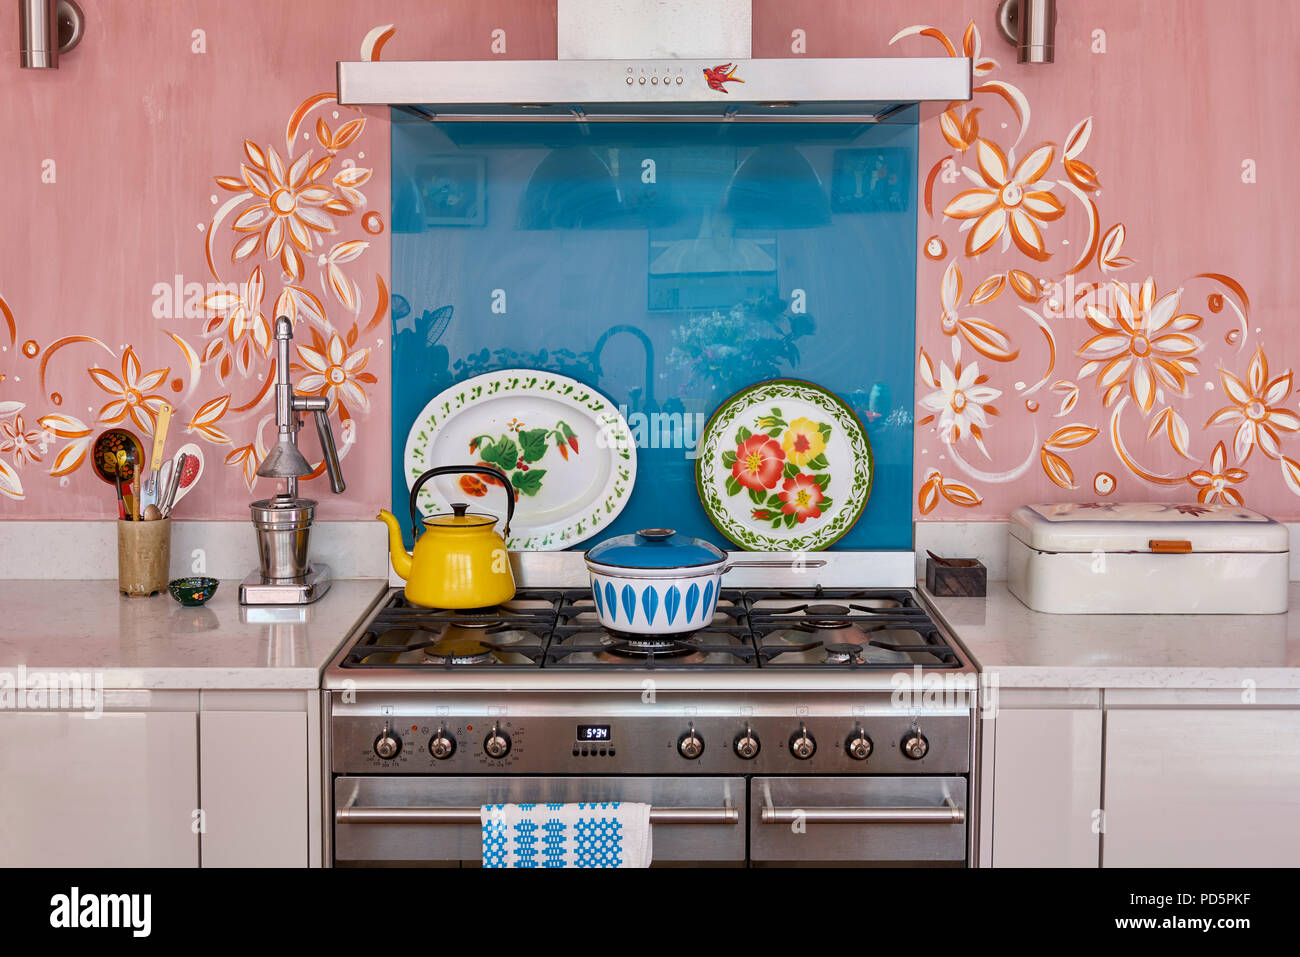 Swedish folk art inspired mural painted by Jo Oakley frames the cooker. The kettle and decorative platter dishes are enamelware - Stock Image